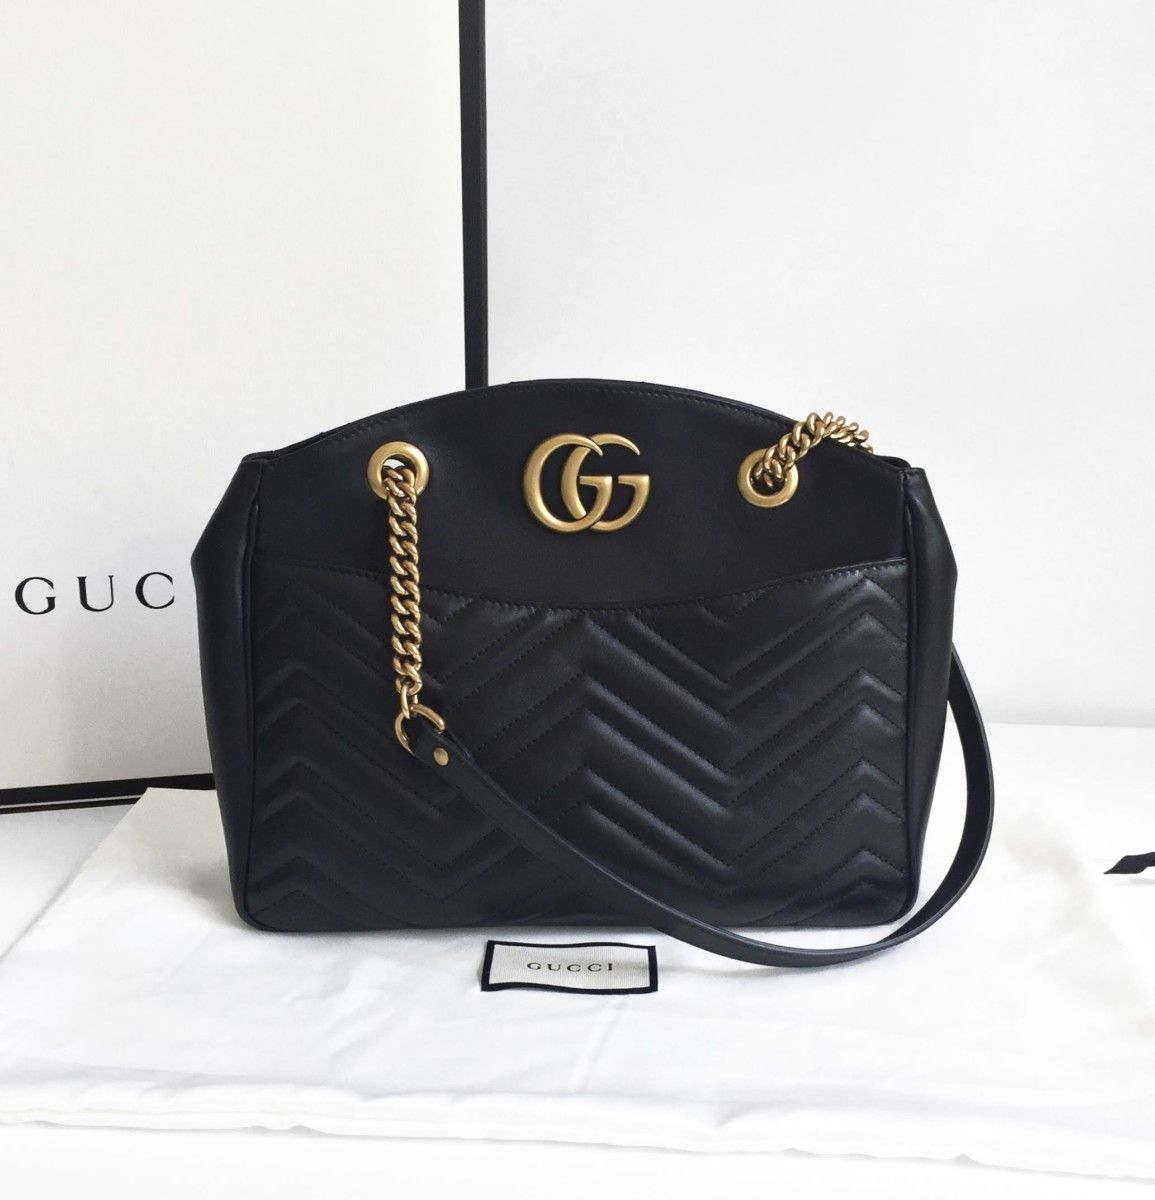 Luxury Consignment In Canada Used Handbags Chanel Bag Gucci Louis Vuitton